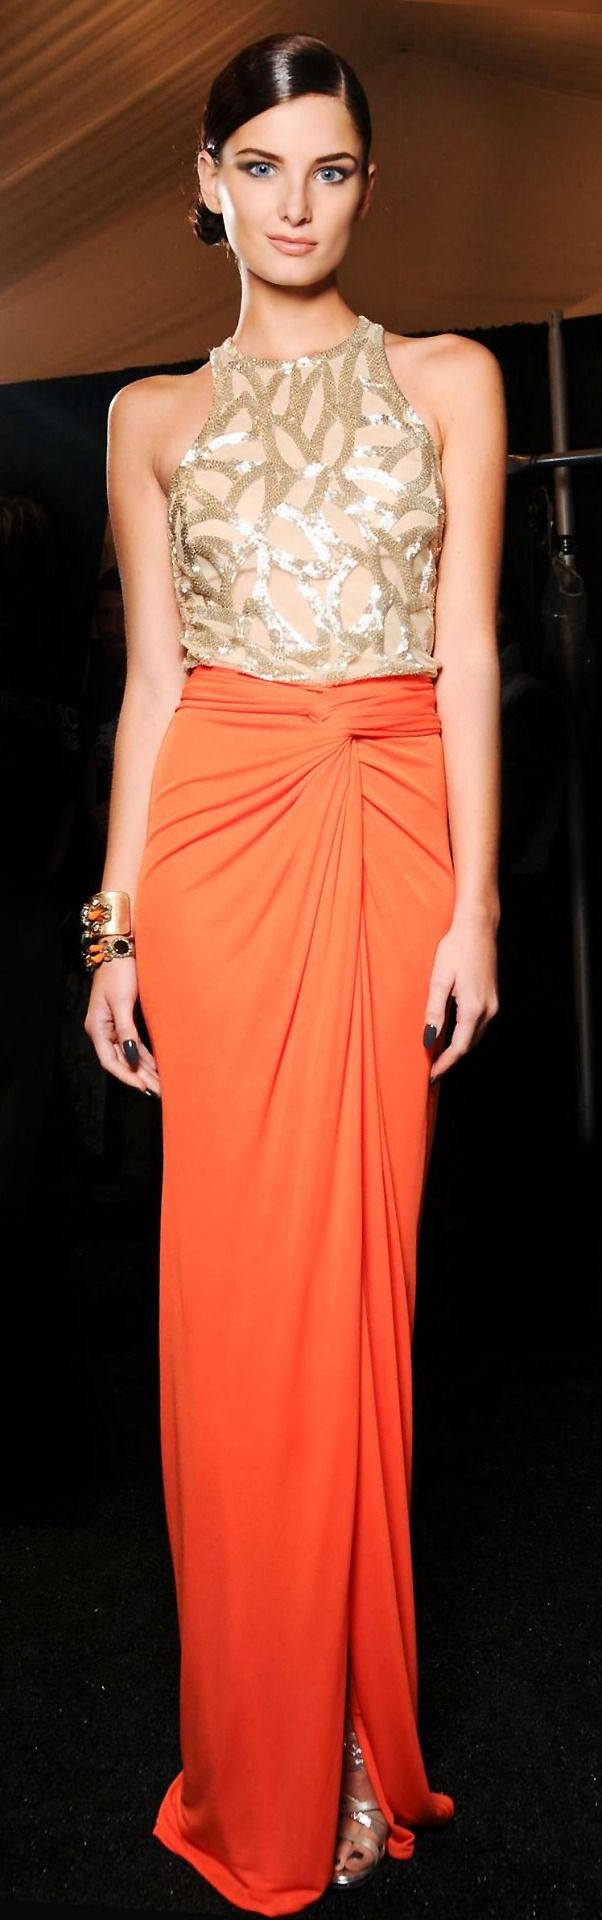 Must have this skirt AND shirt, the length of the skirt and structure of the top are gorge!